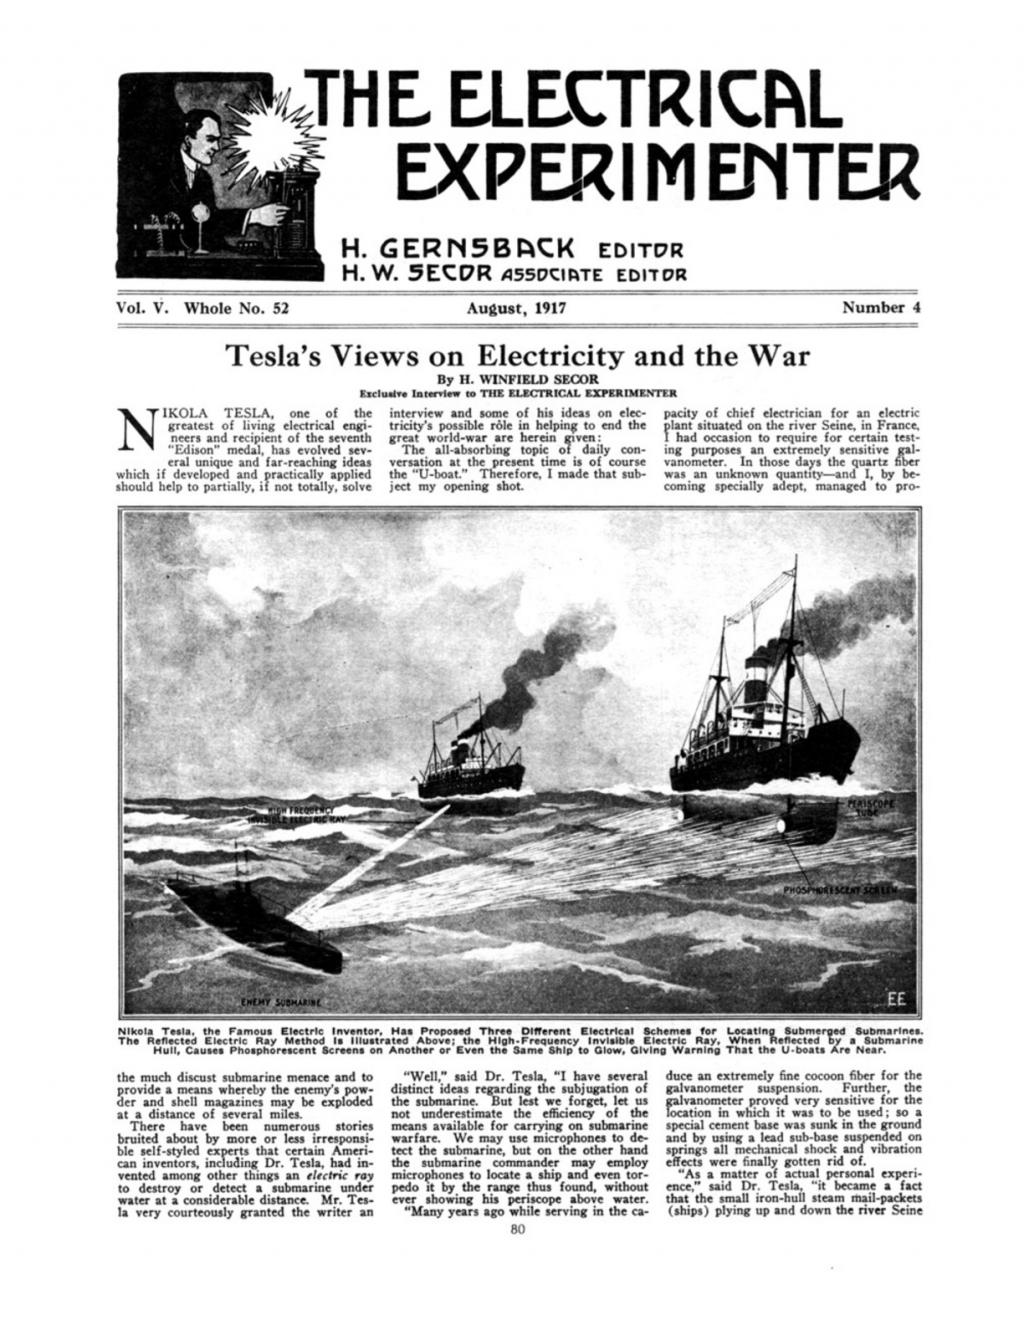 Preview of Tesla's Views on Electricity and the War article